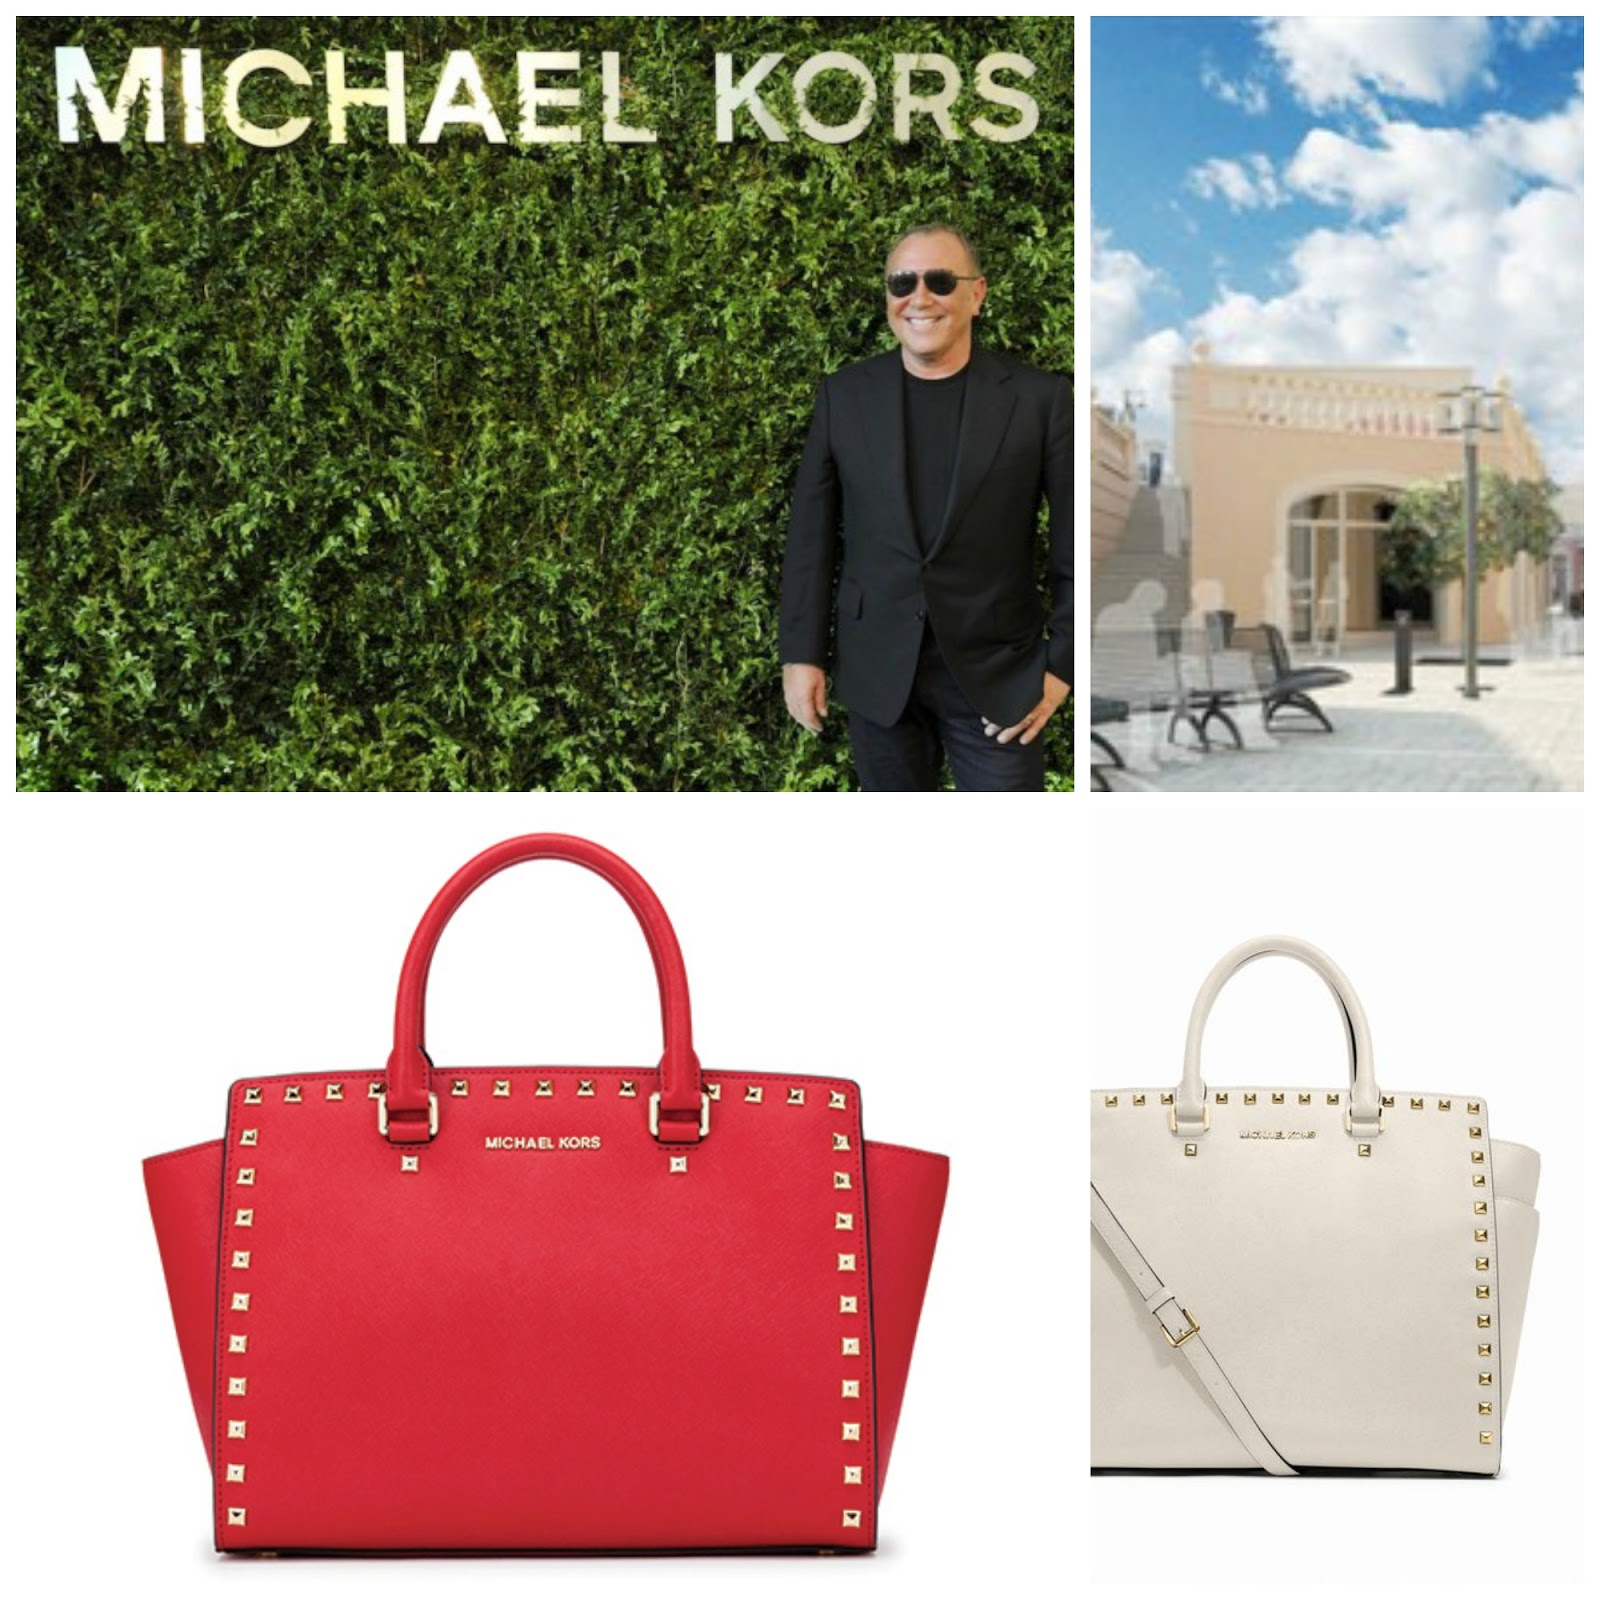 new opening michael kors al sicilia outlet village